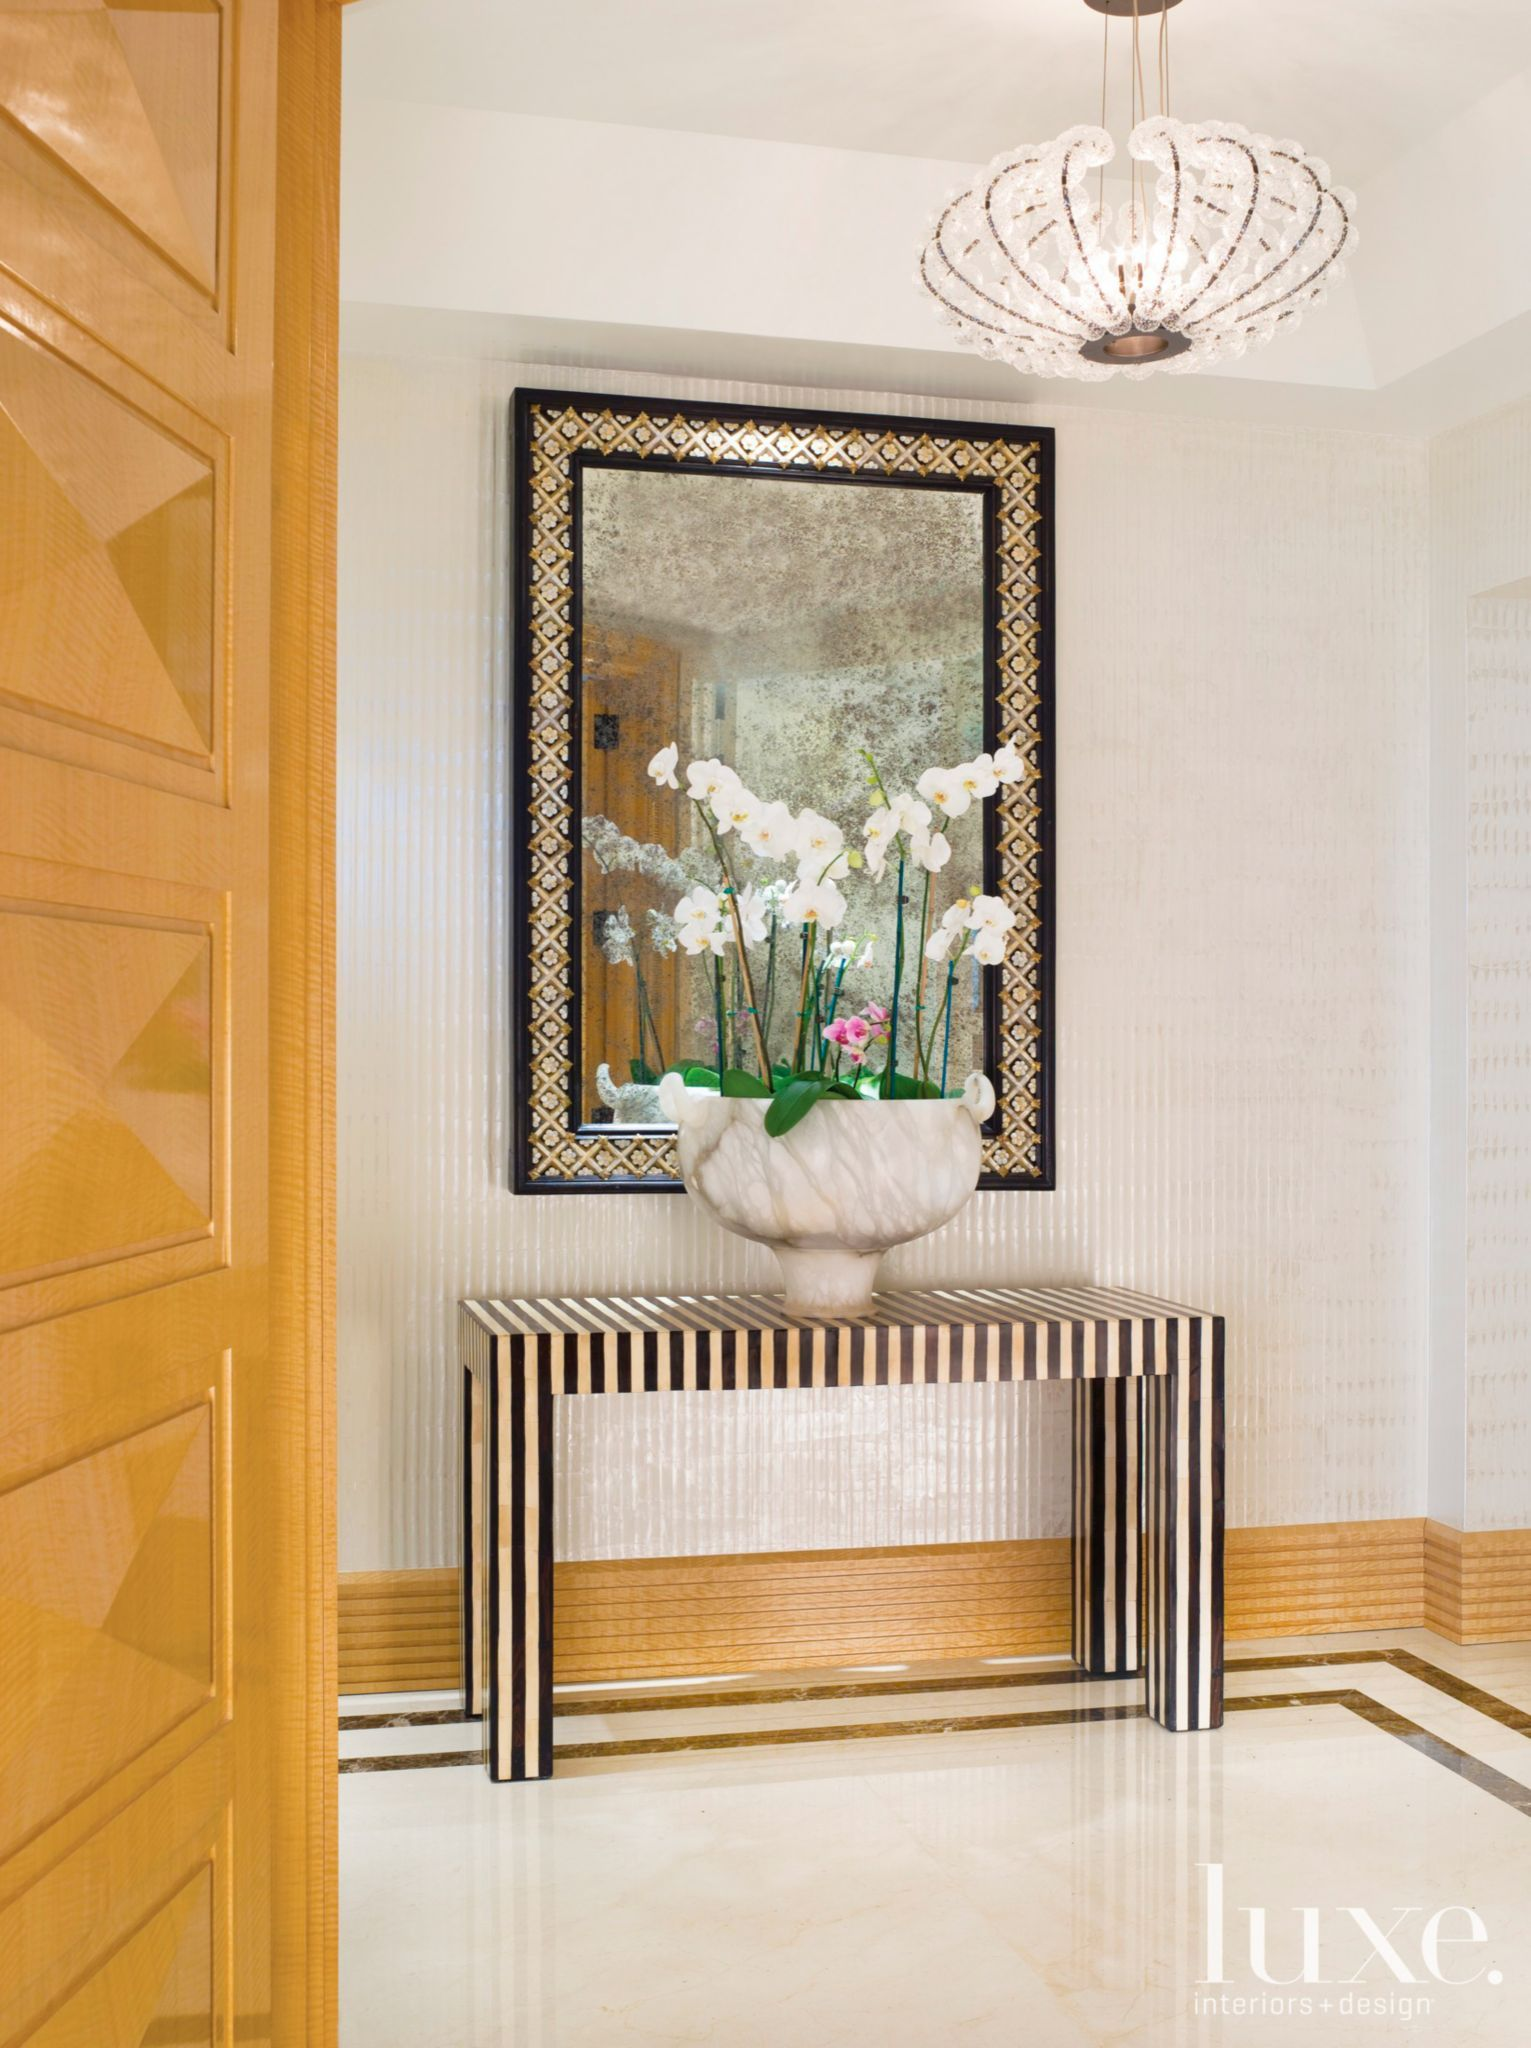 Wall With Shimmer - Luxe Interiors + Design